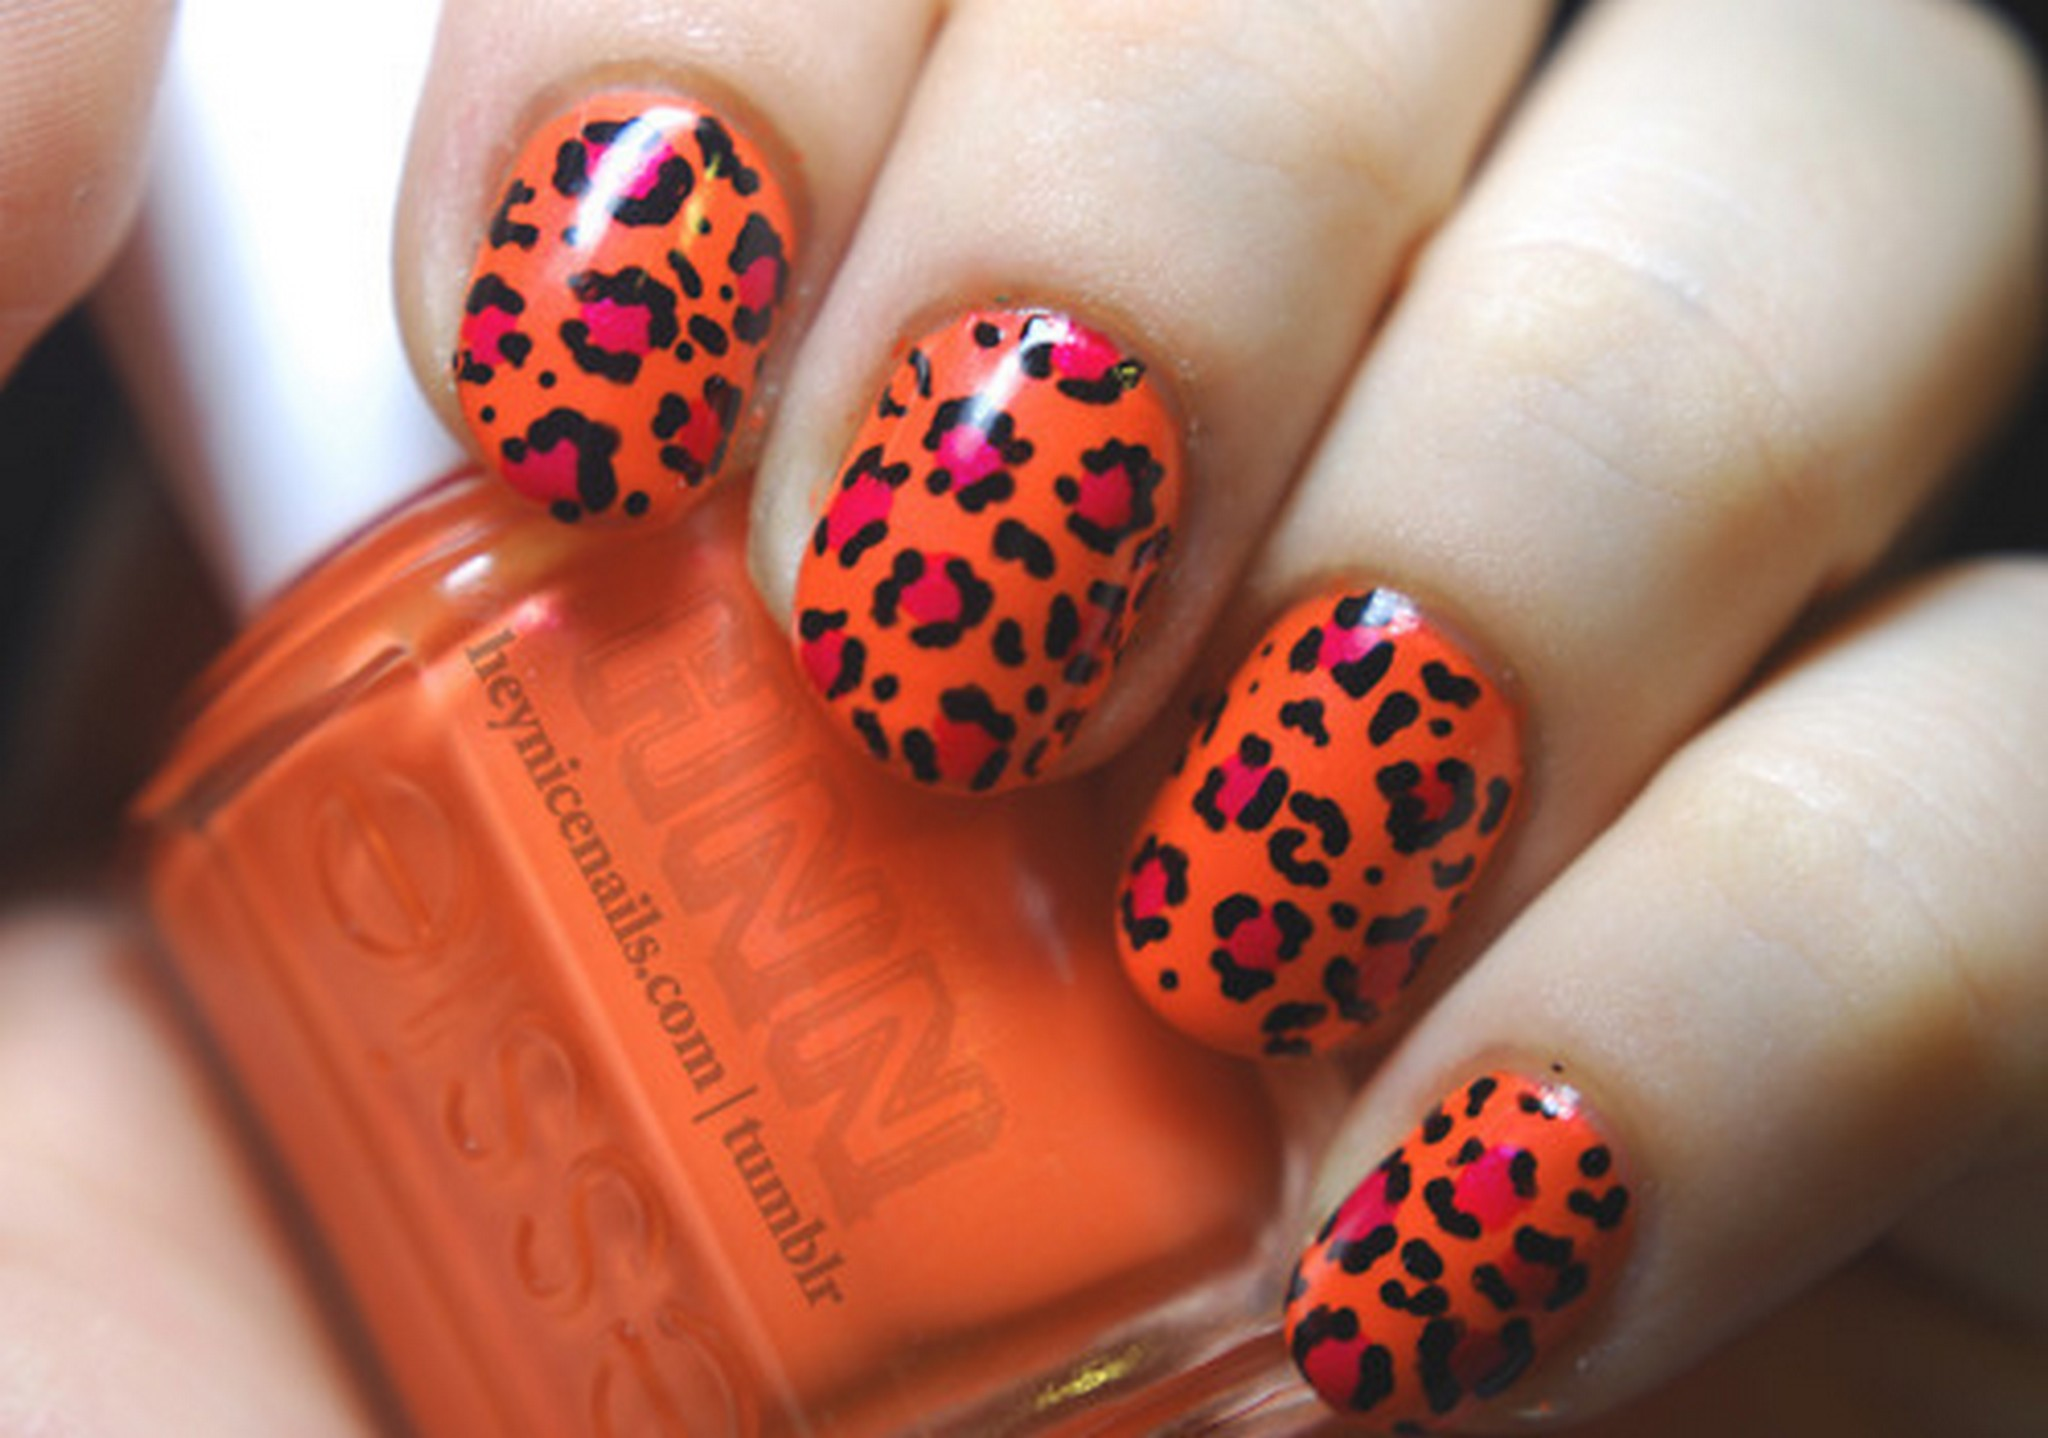 Nail Art Panter discovered by Girls Fashion ♥ ™